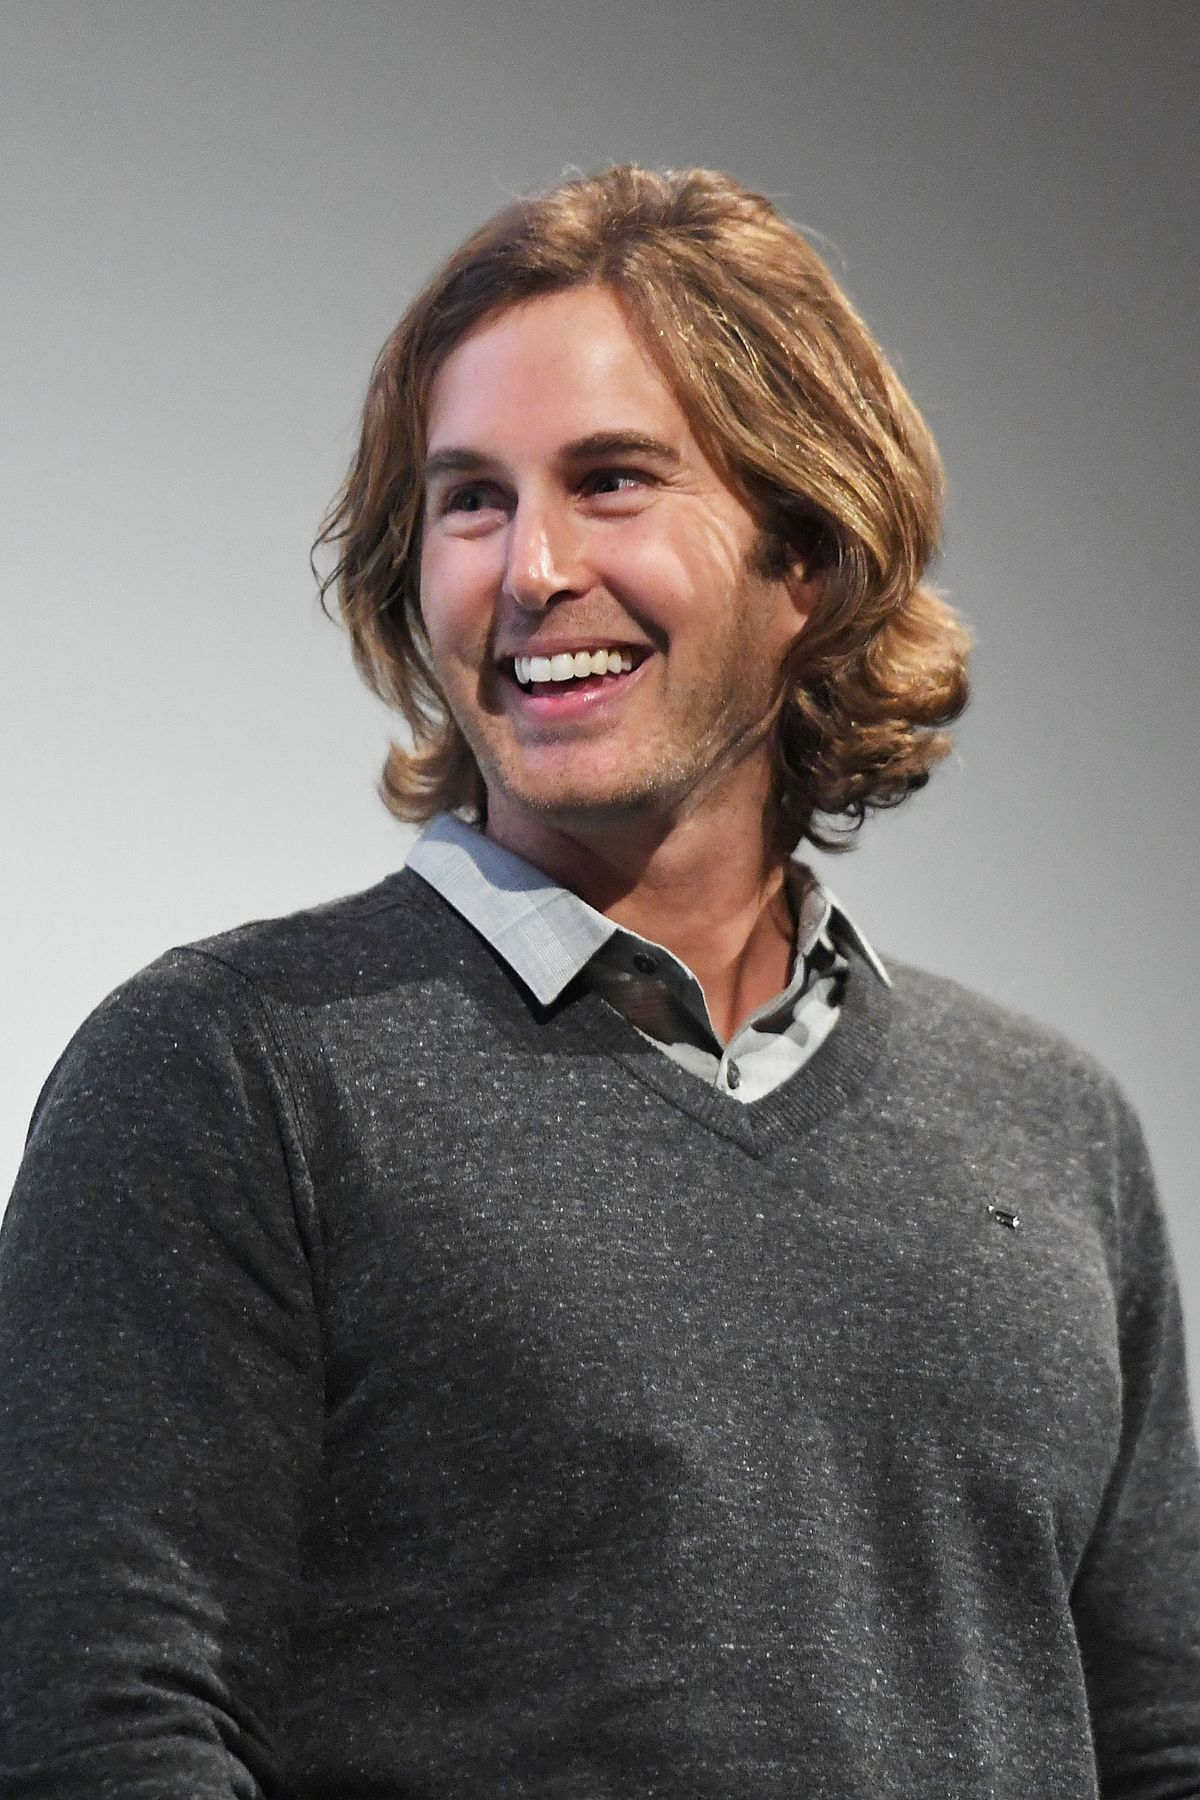 """AUSTIN, TX - MARCH 12:  Author Greg Sestero attends the """"The Disaster Artist"""" premiere 2017 SXSW Conference and Festivals on March 12, 2017 in Austin, Texas.  (Photo by Matt Winkelmeyer/Getty Images for SXSW)"""